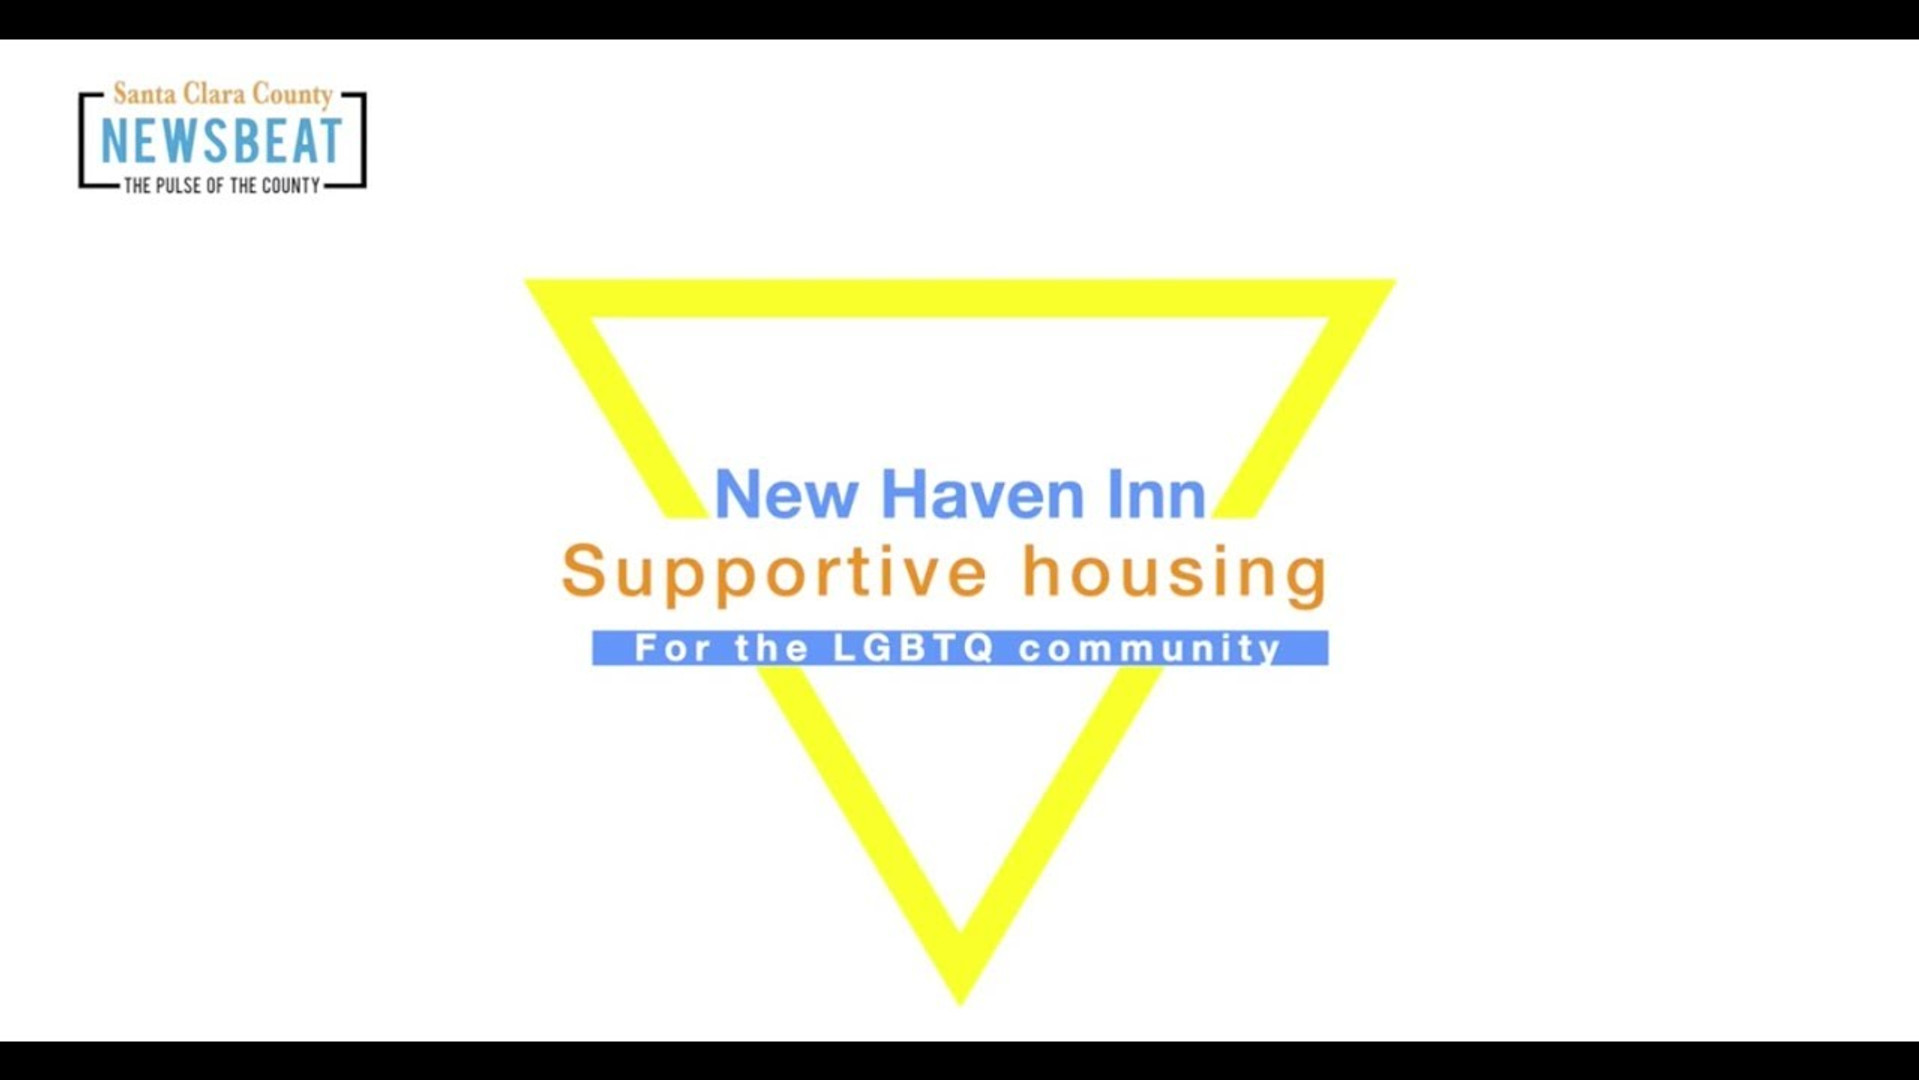 New Haven Inn: Supportive Housing for the LGBTQ+ Community